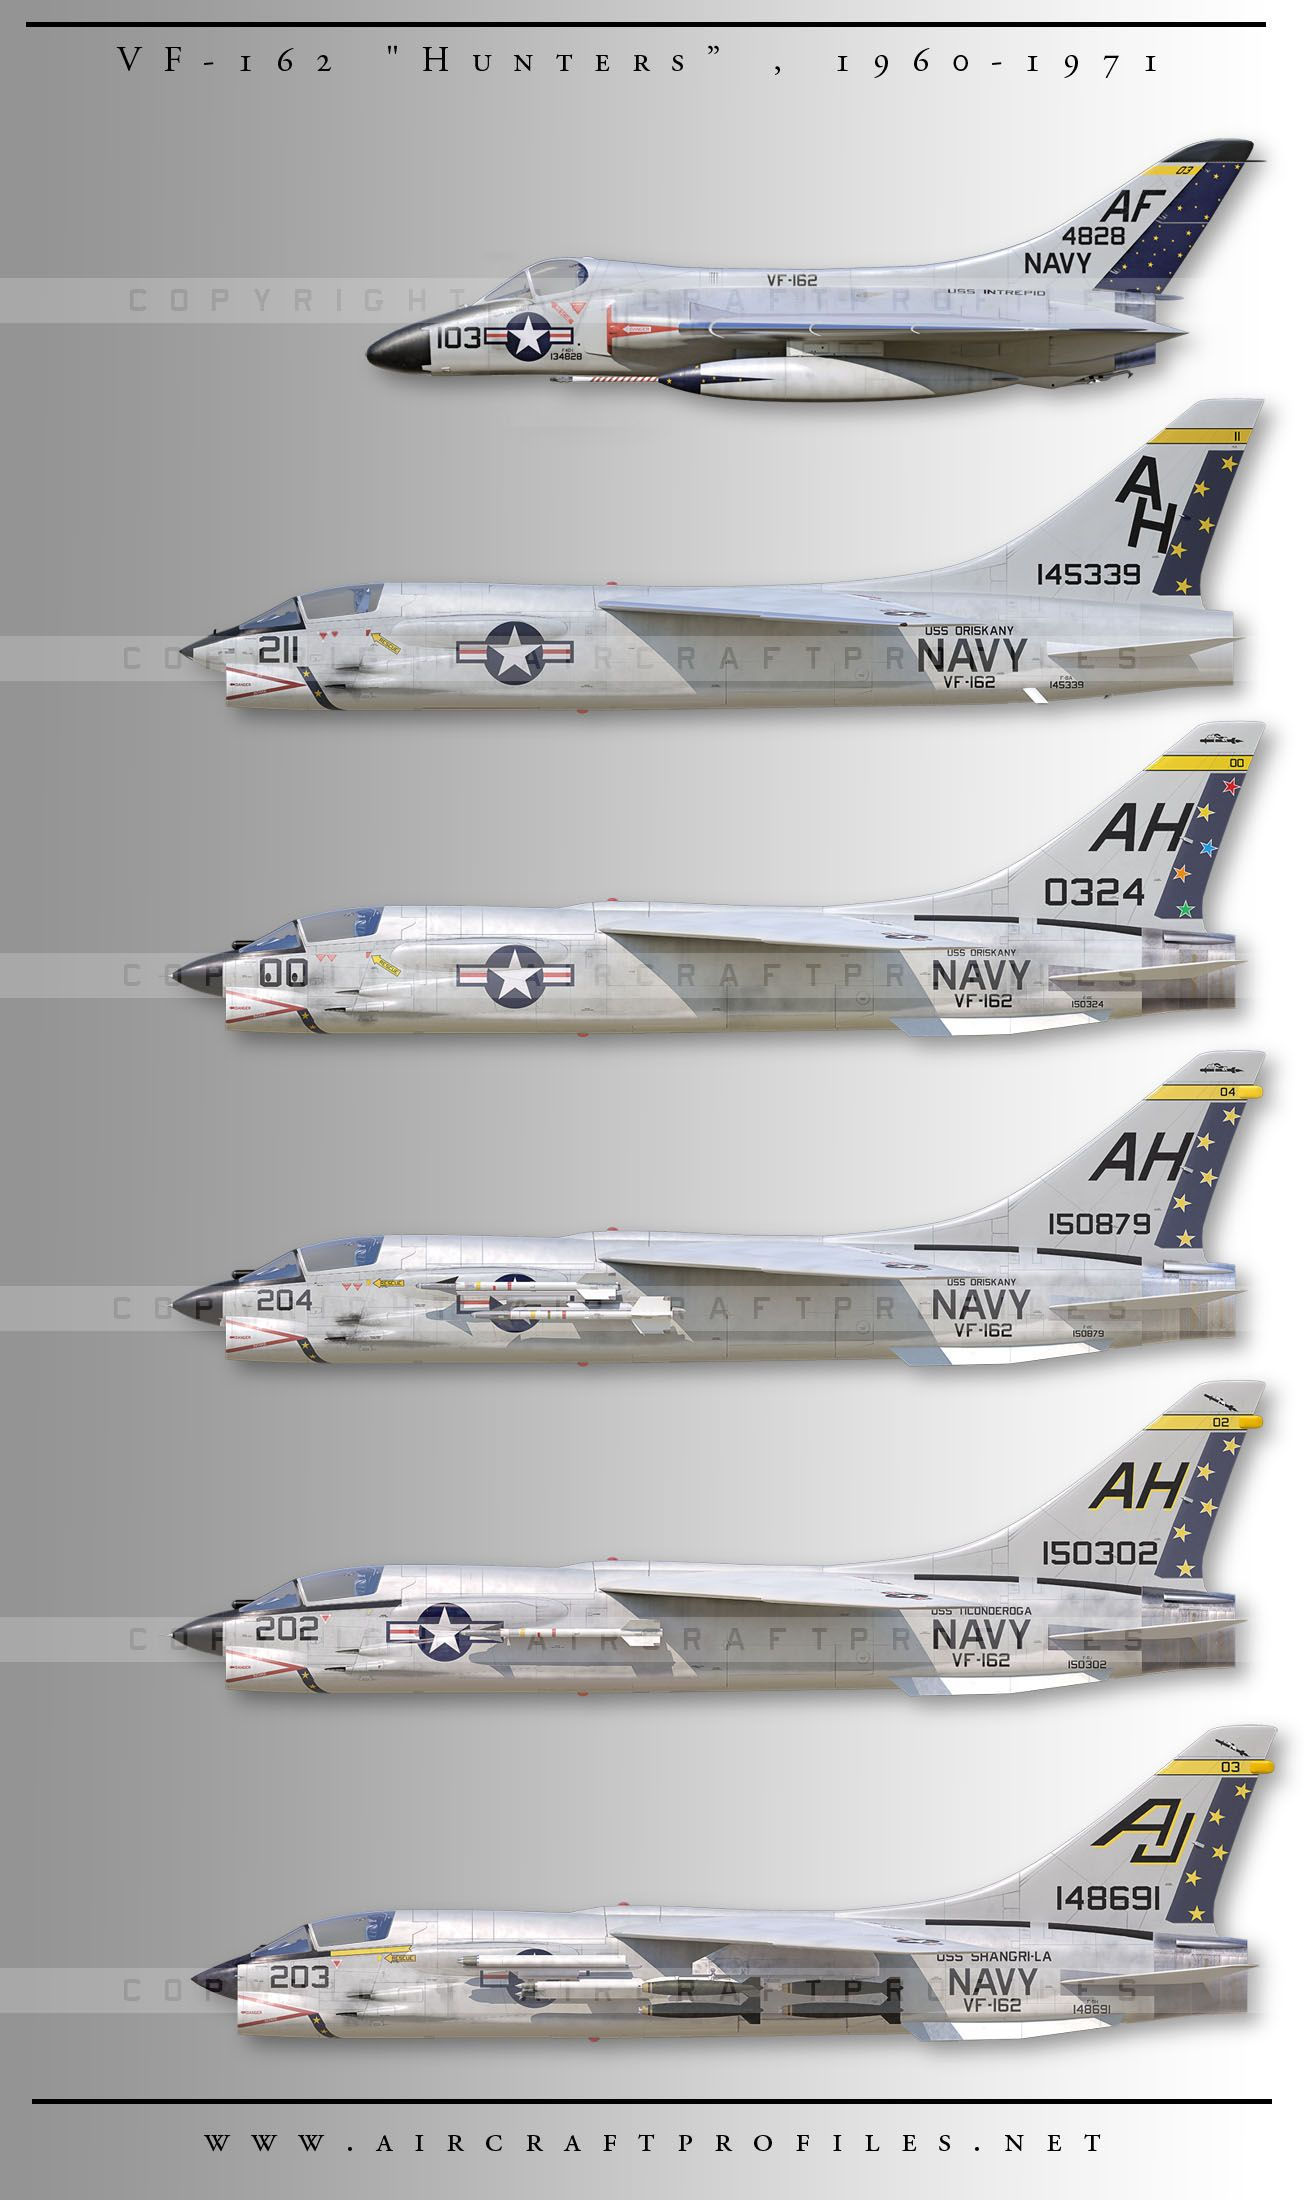 VF-162 Hunters Lineage